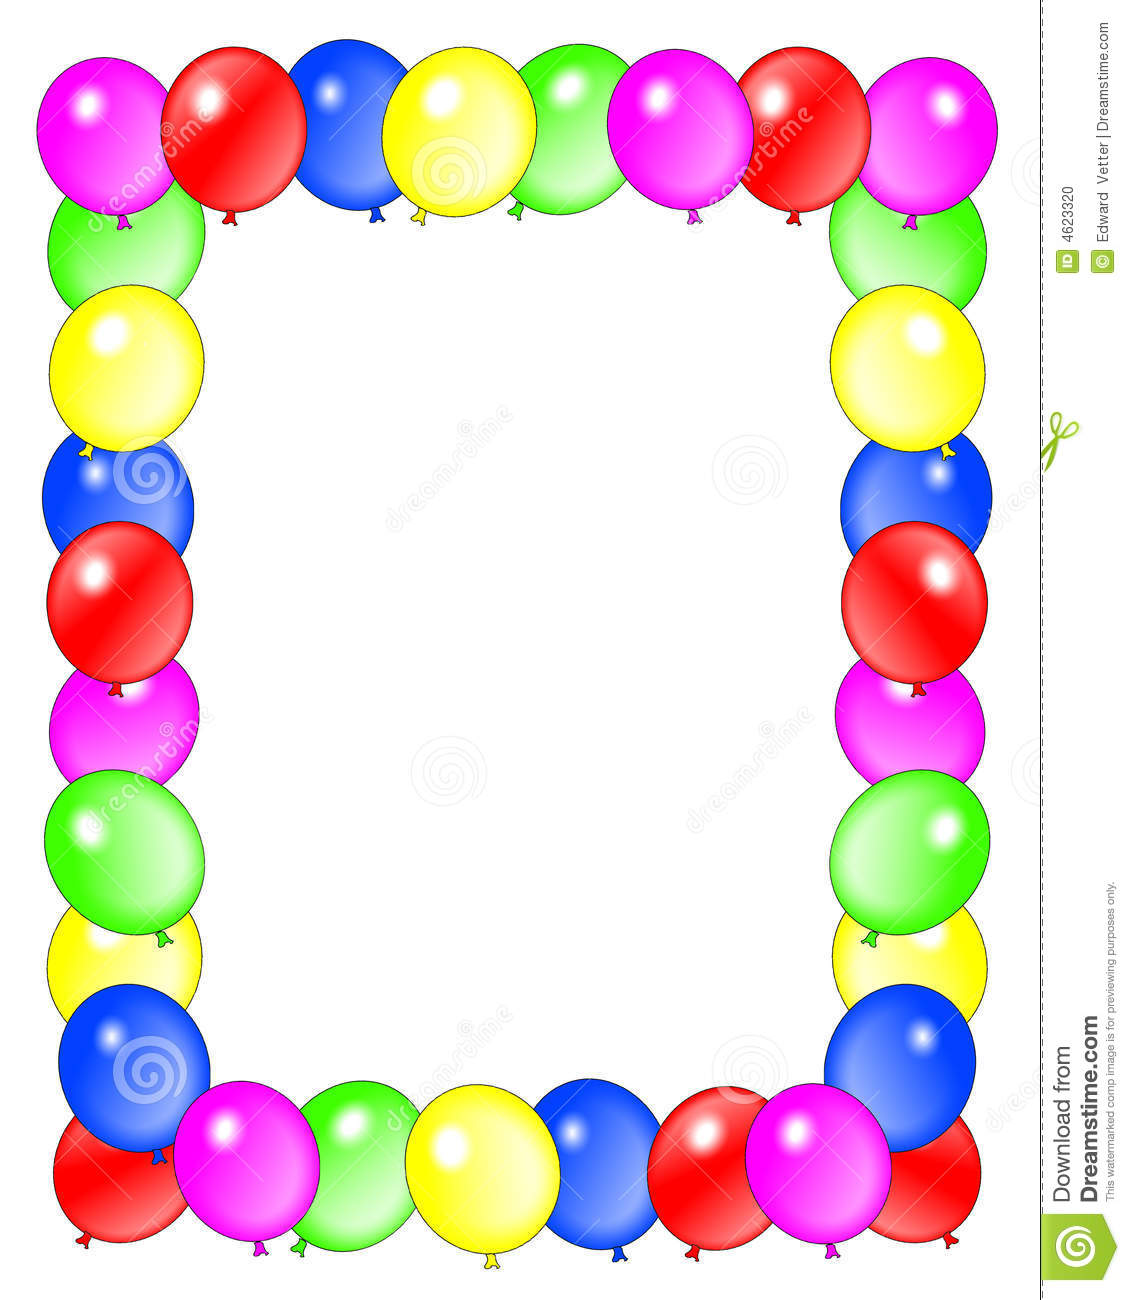 free 50th birthday clip art borders download.